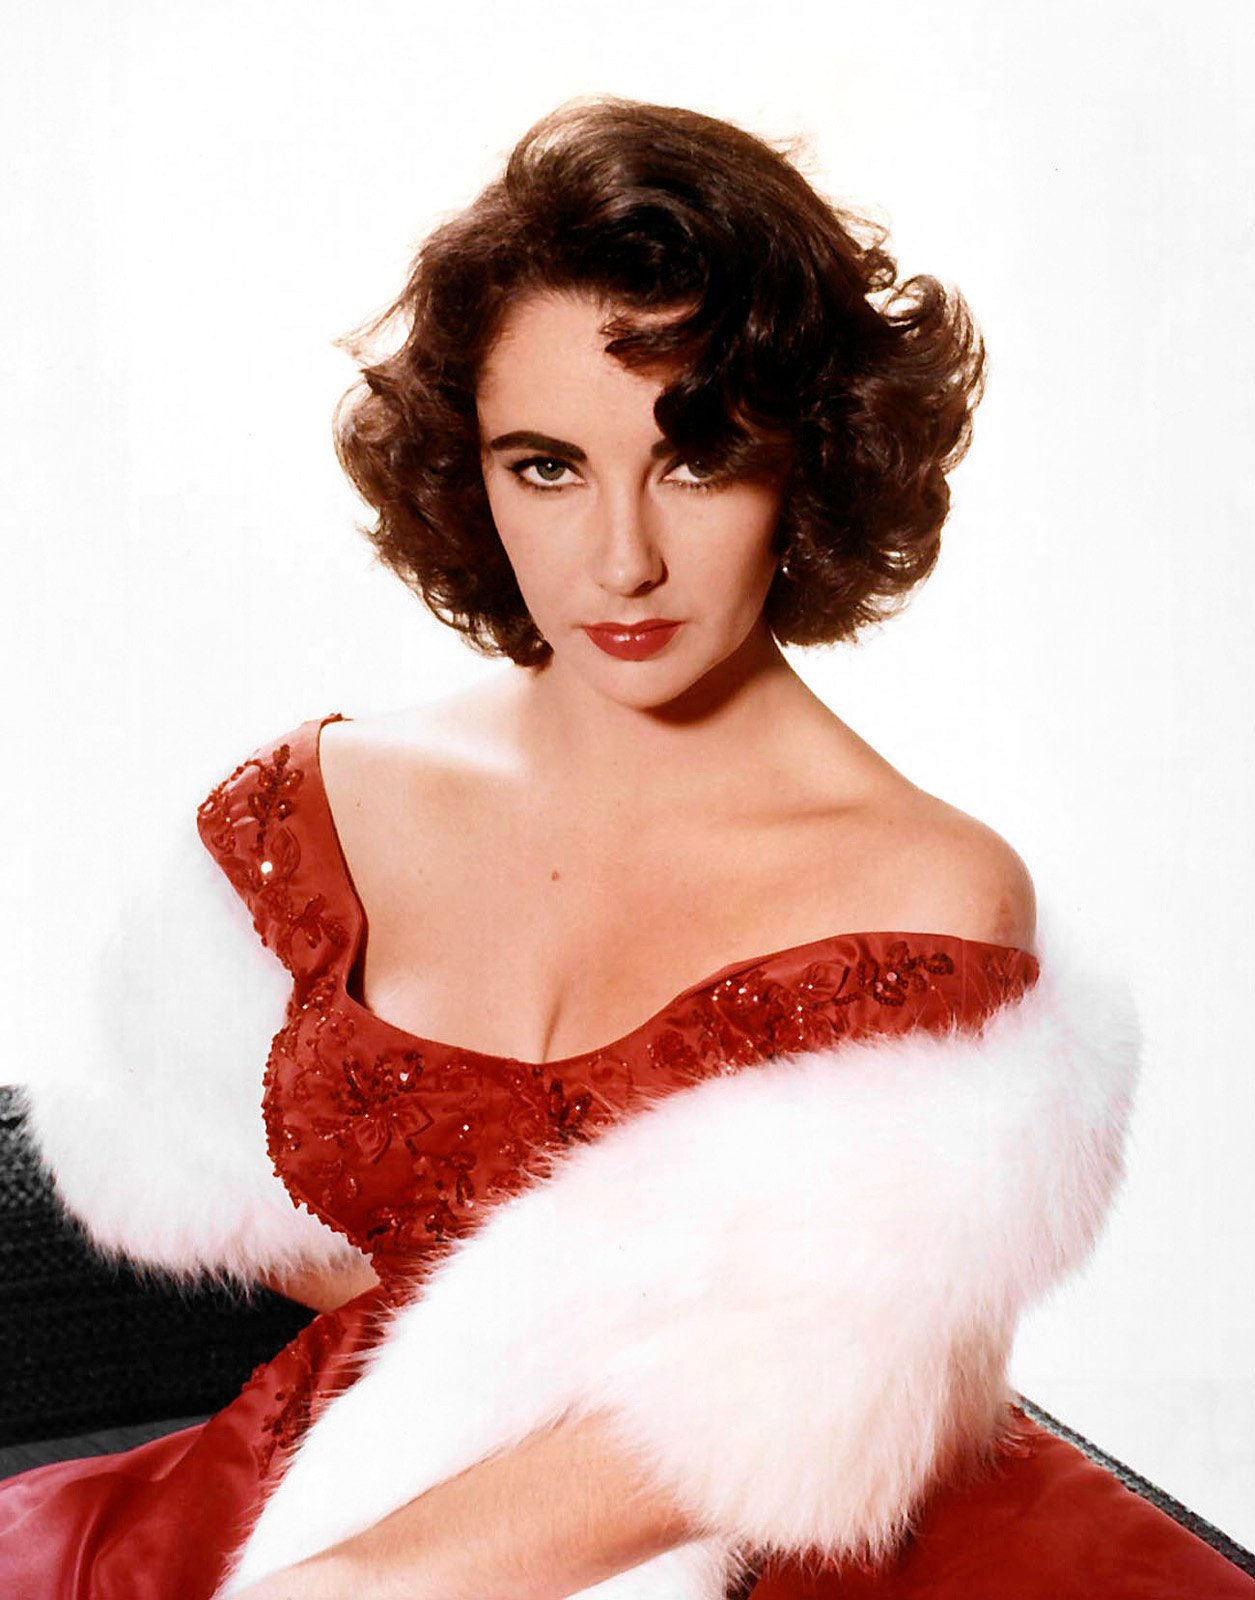 A publicity photo of Elizabeth Taylor circa 1955. | Source: Wikimedia Commons